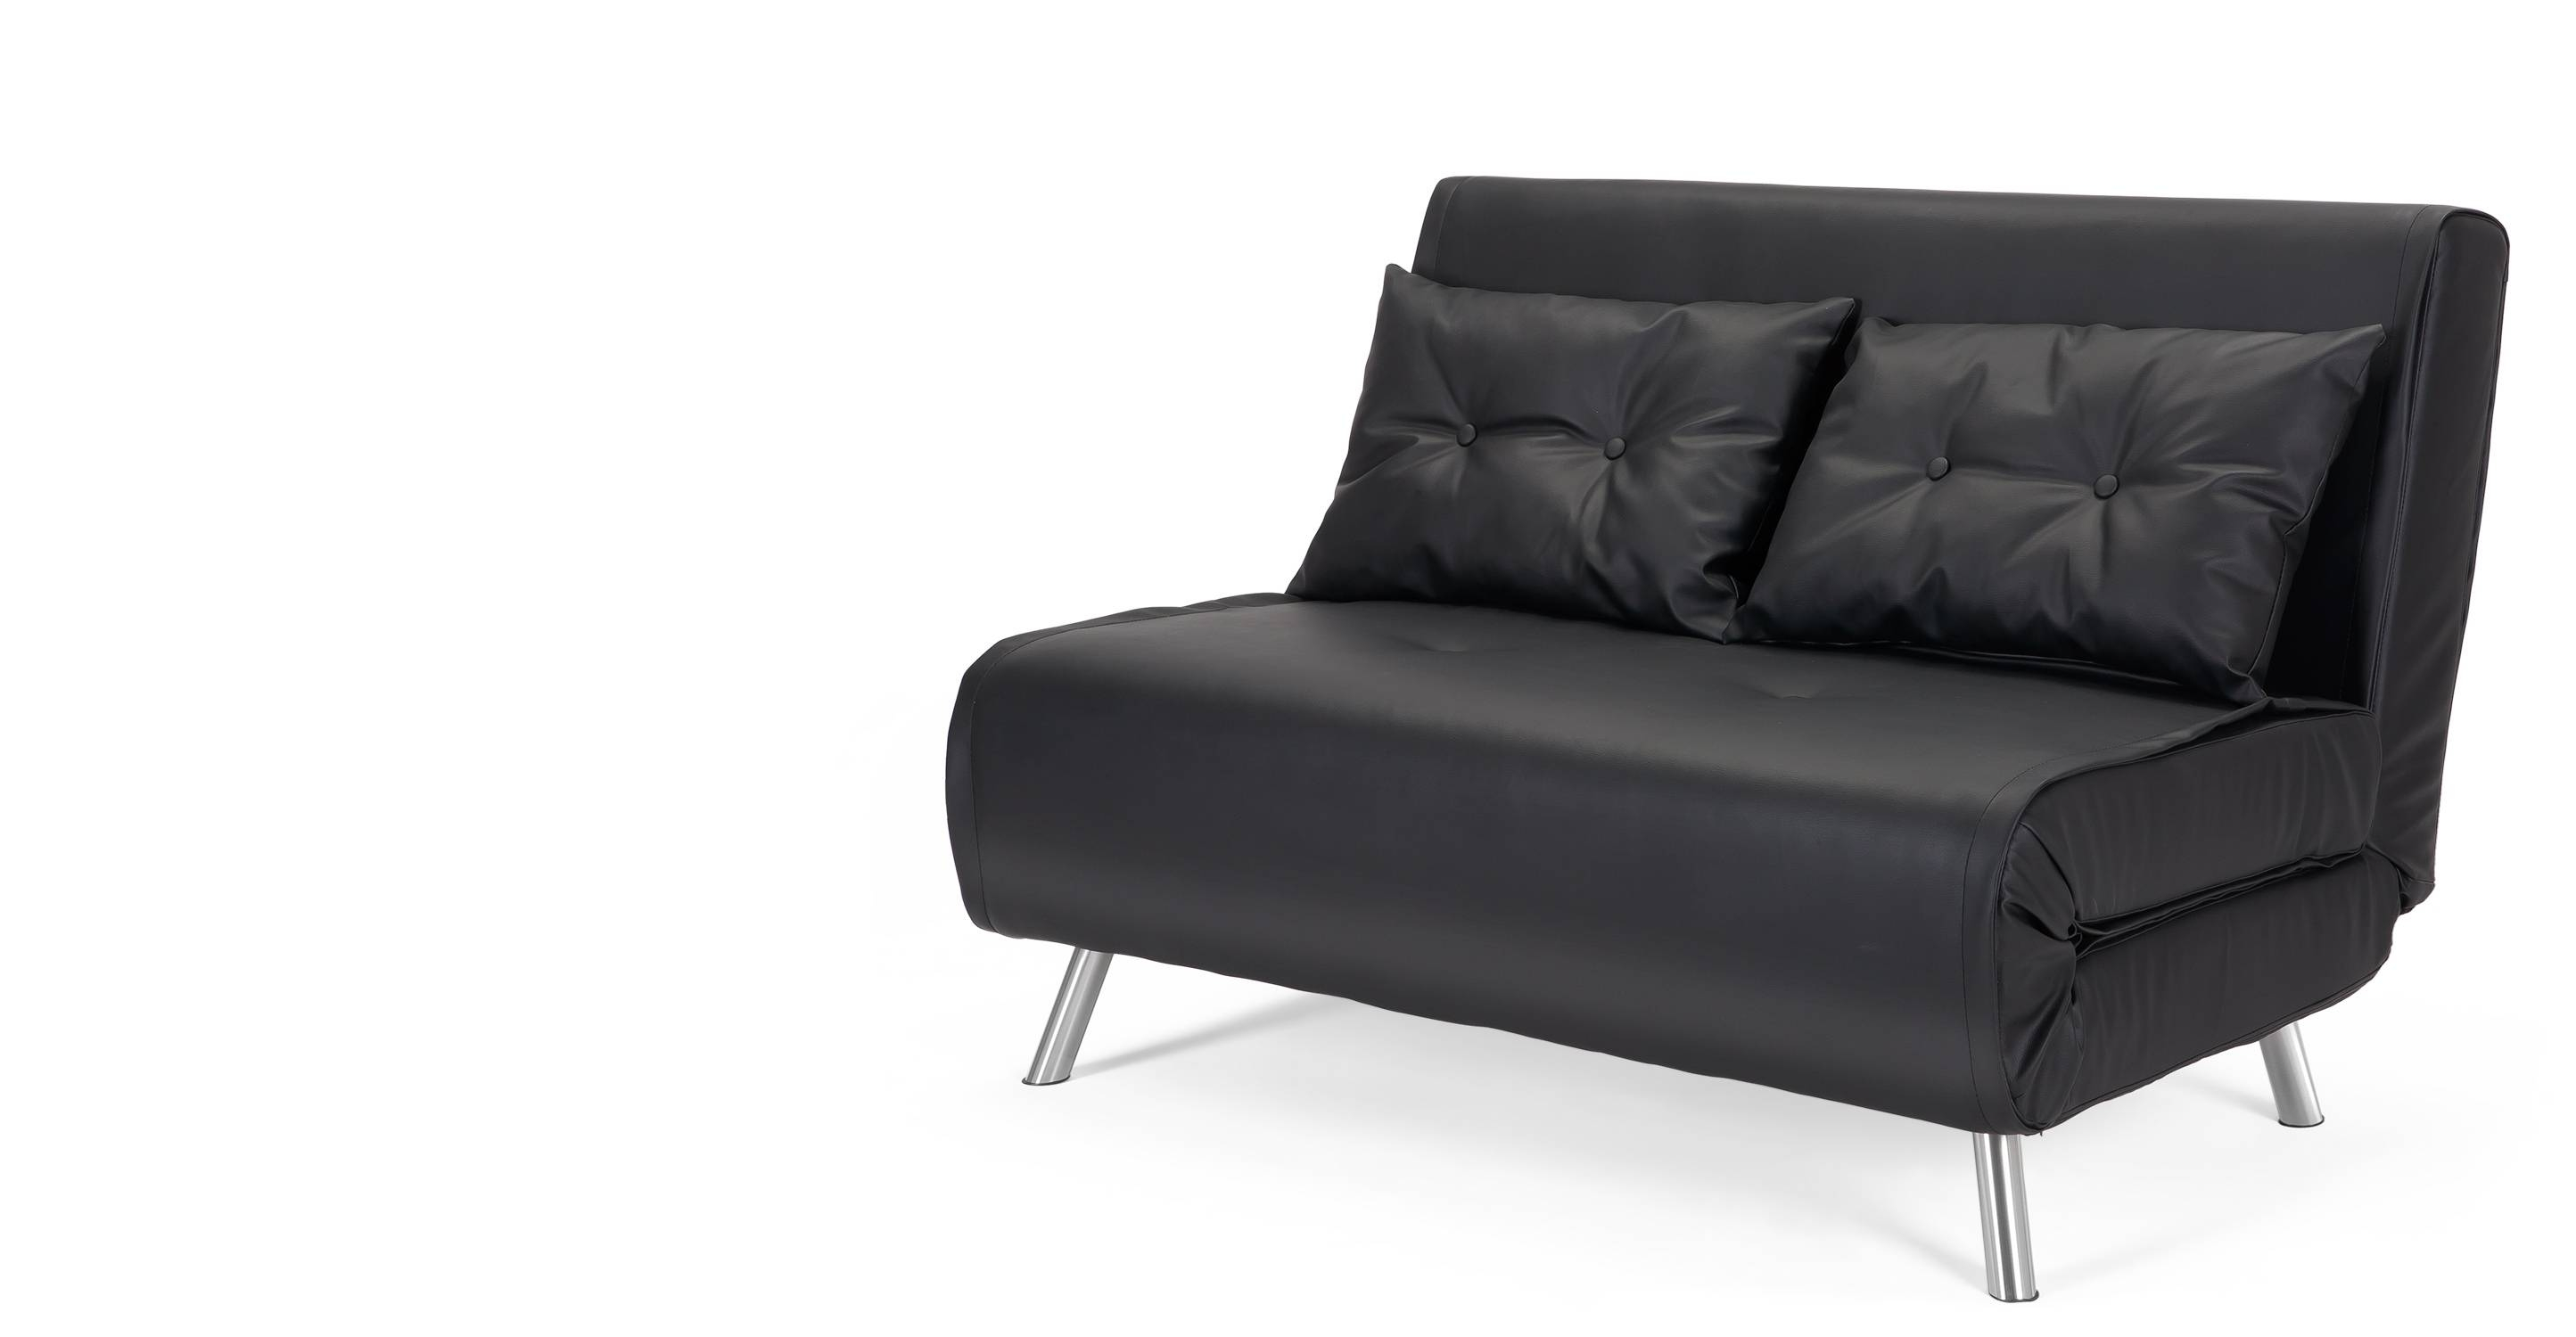 Sofas Center : Small Sofa Chair Simple And Stylish Leather throughout Small Sofas And Chairs (Image 15 of 15)